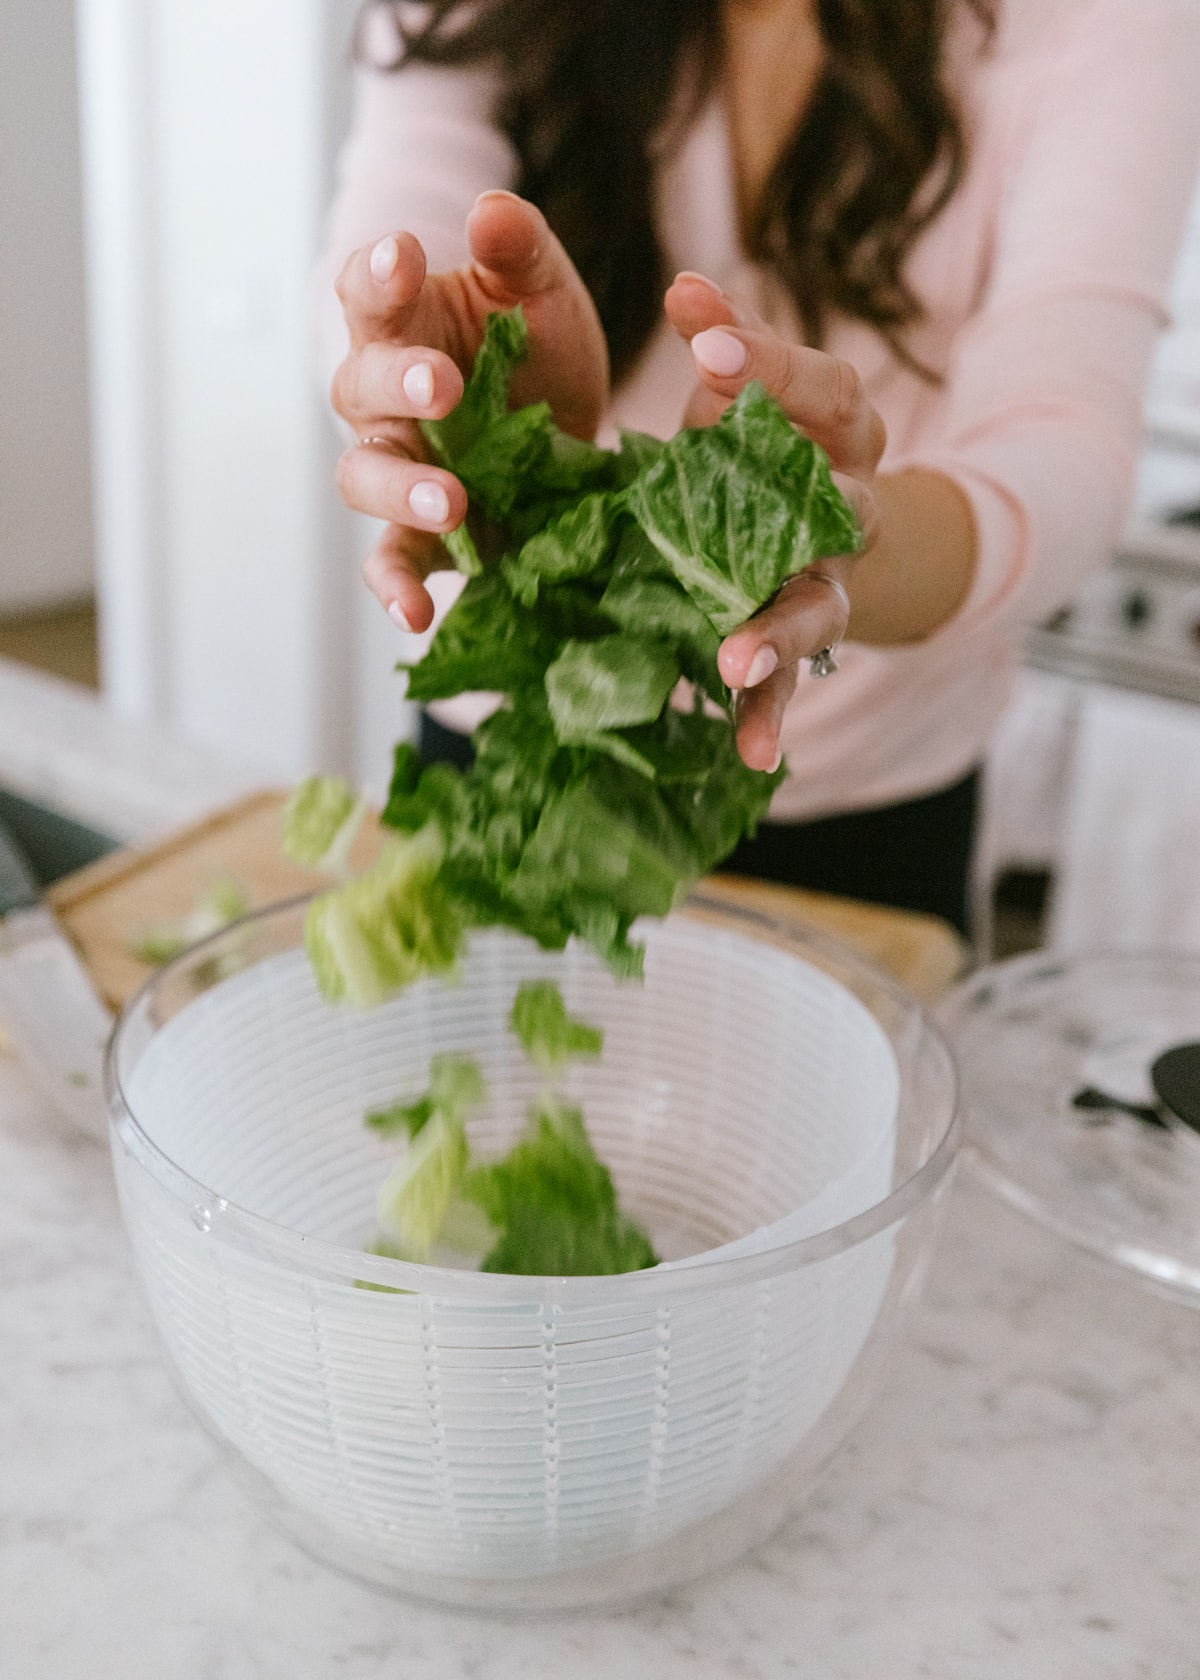 salad spinner healthy eating tools